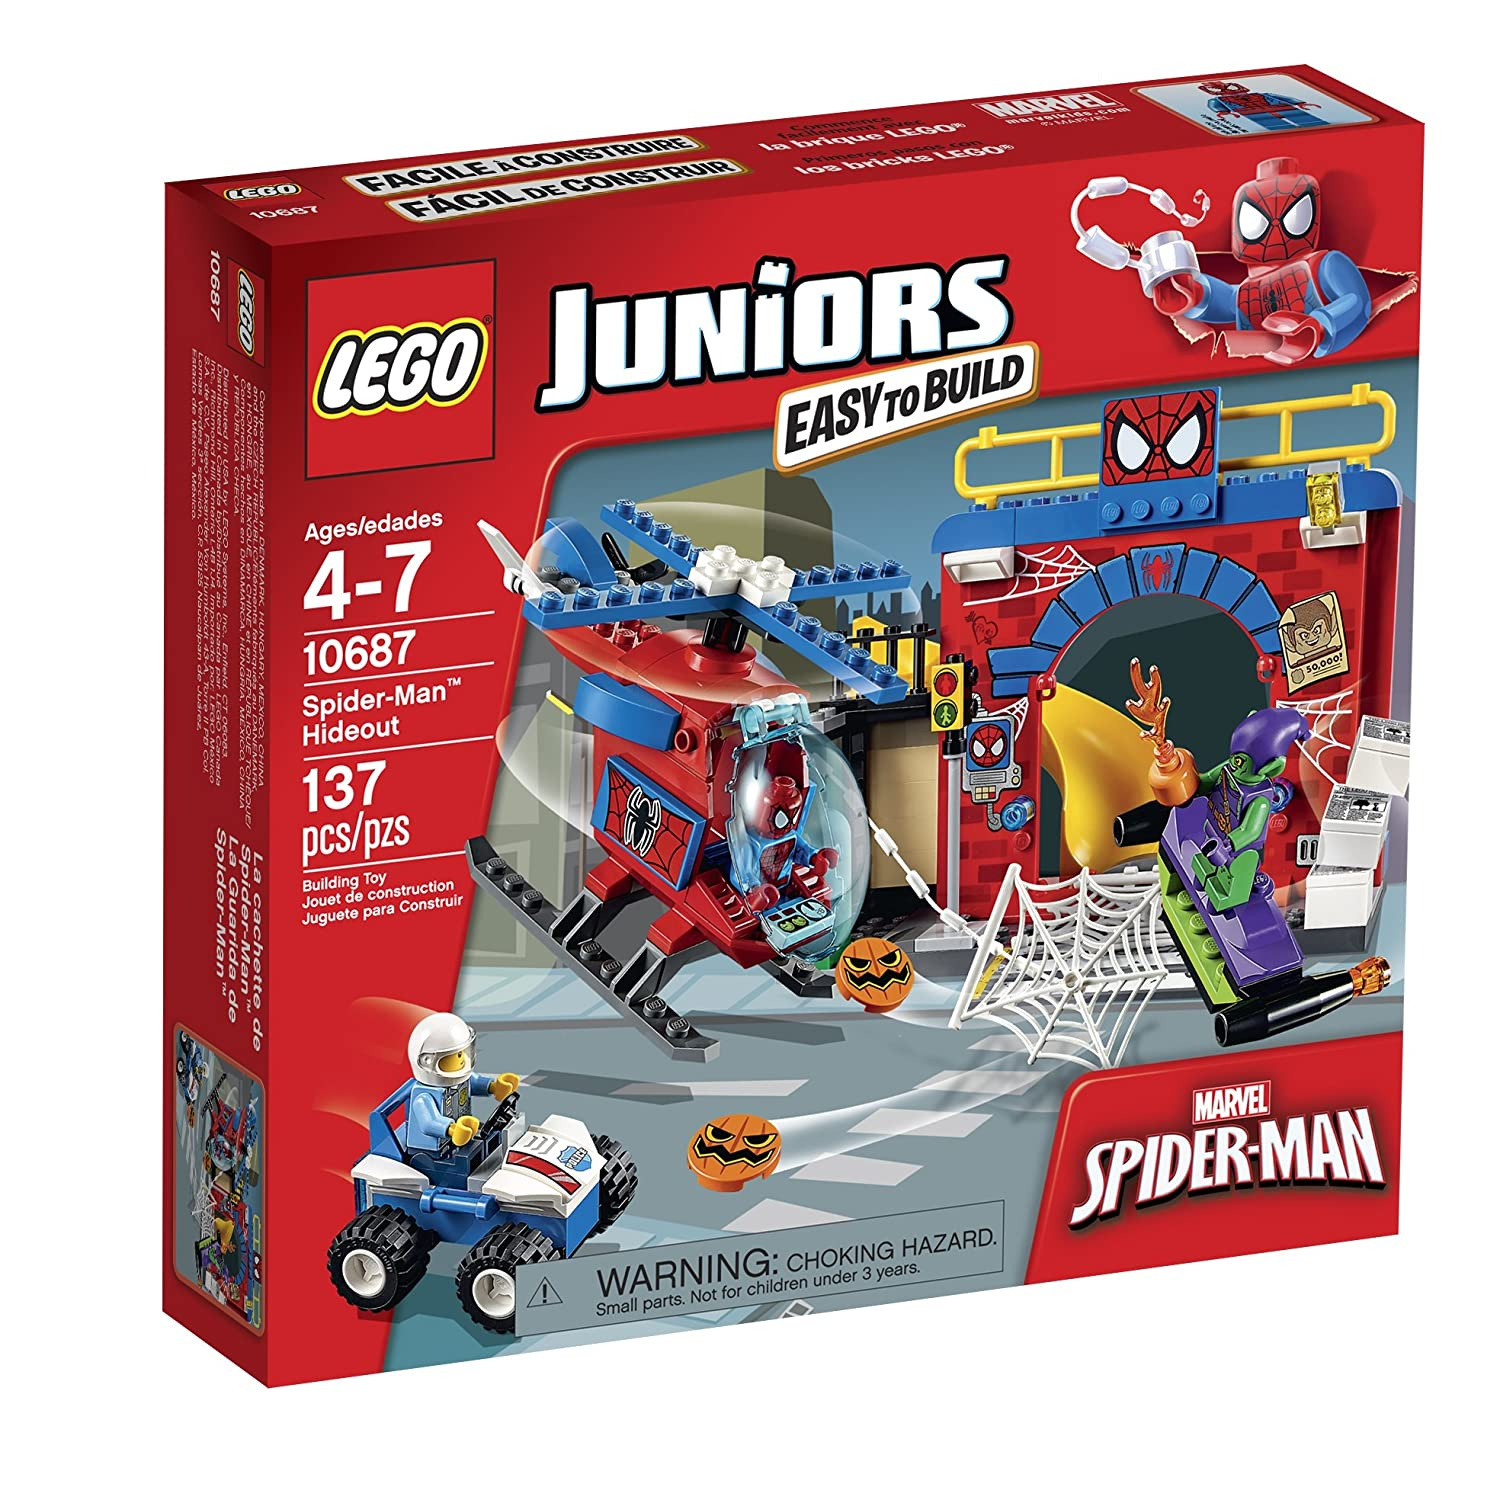 Top 10 Best Lego Sets for Kids 5 to 7 Years for 2019-2020 - cover